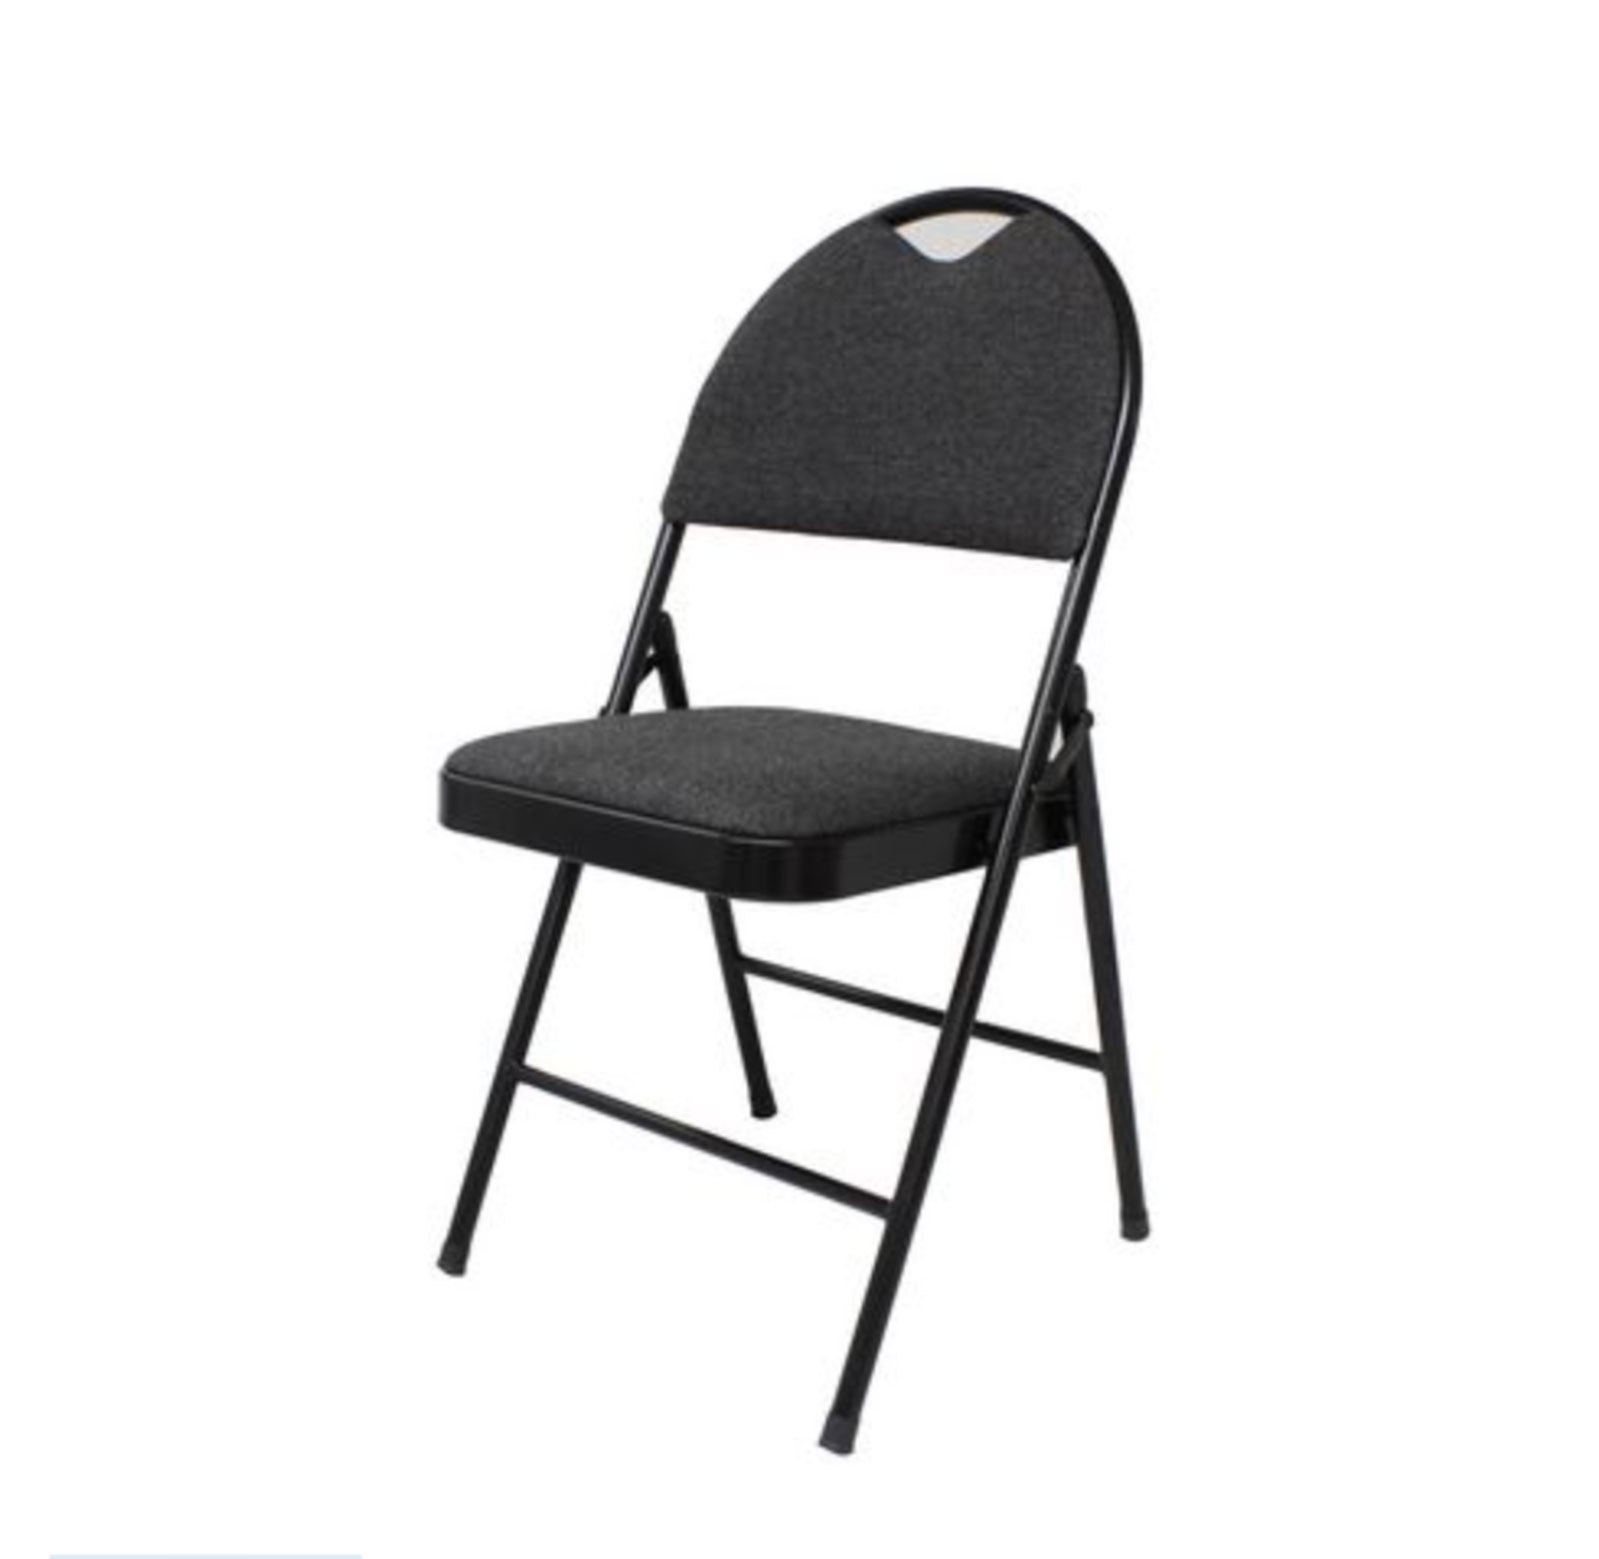 Padded Folding Chairs Black For Rent Km Party Rental